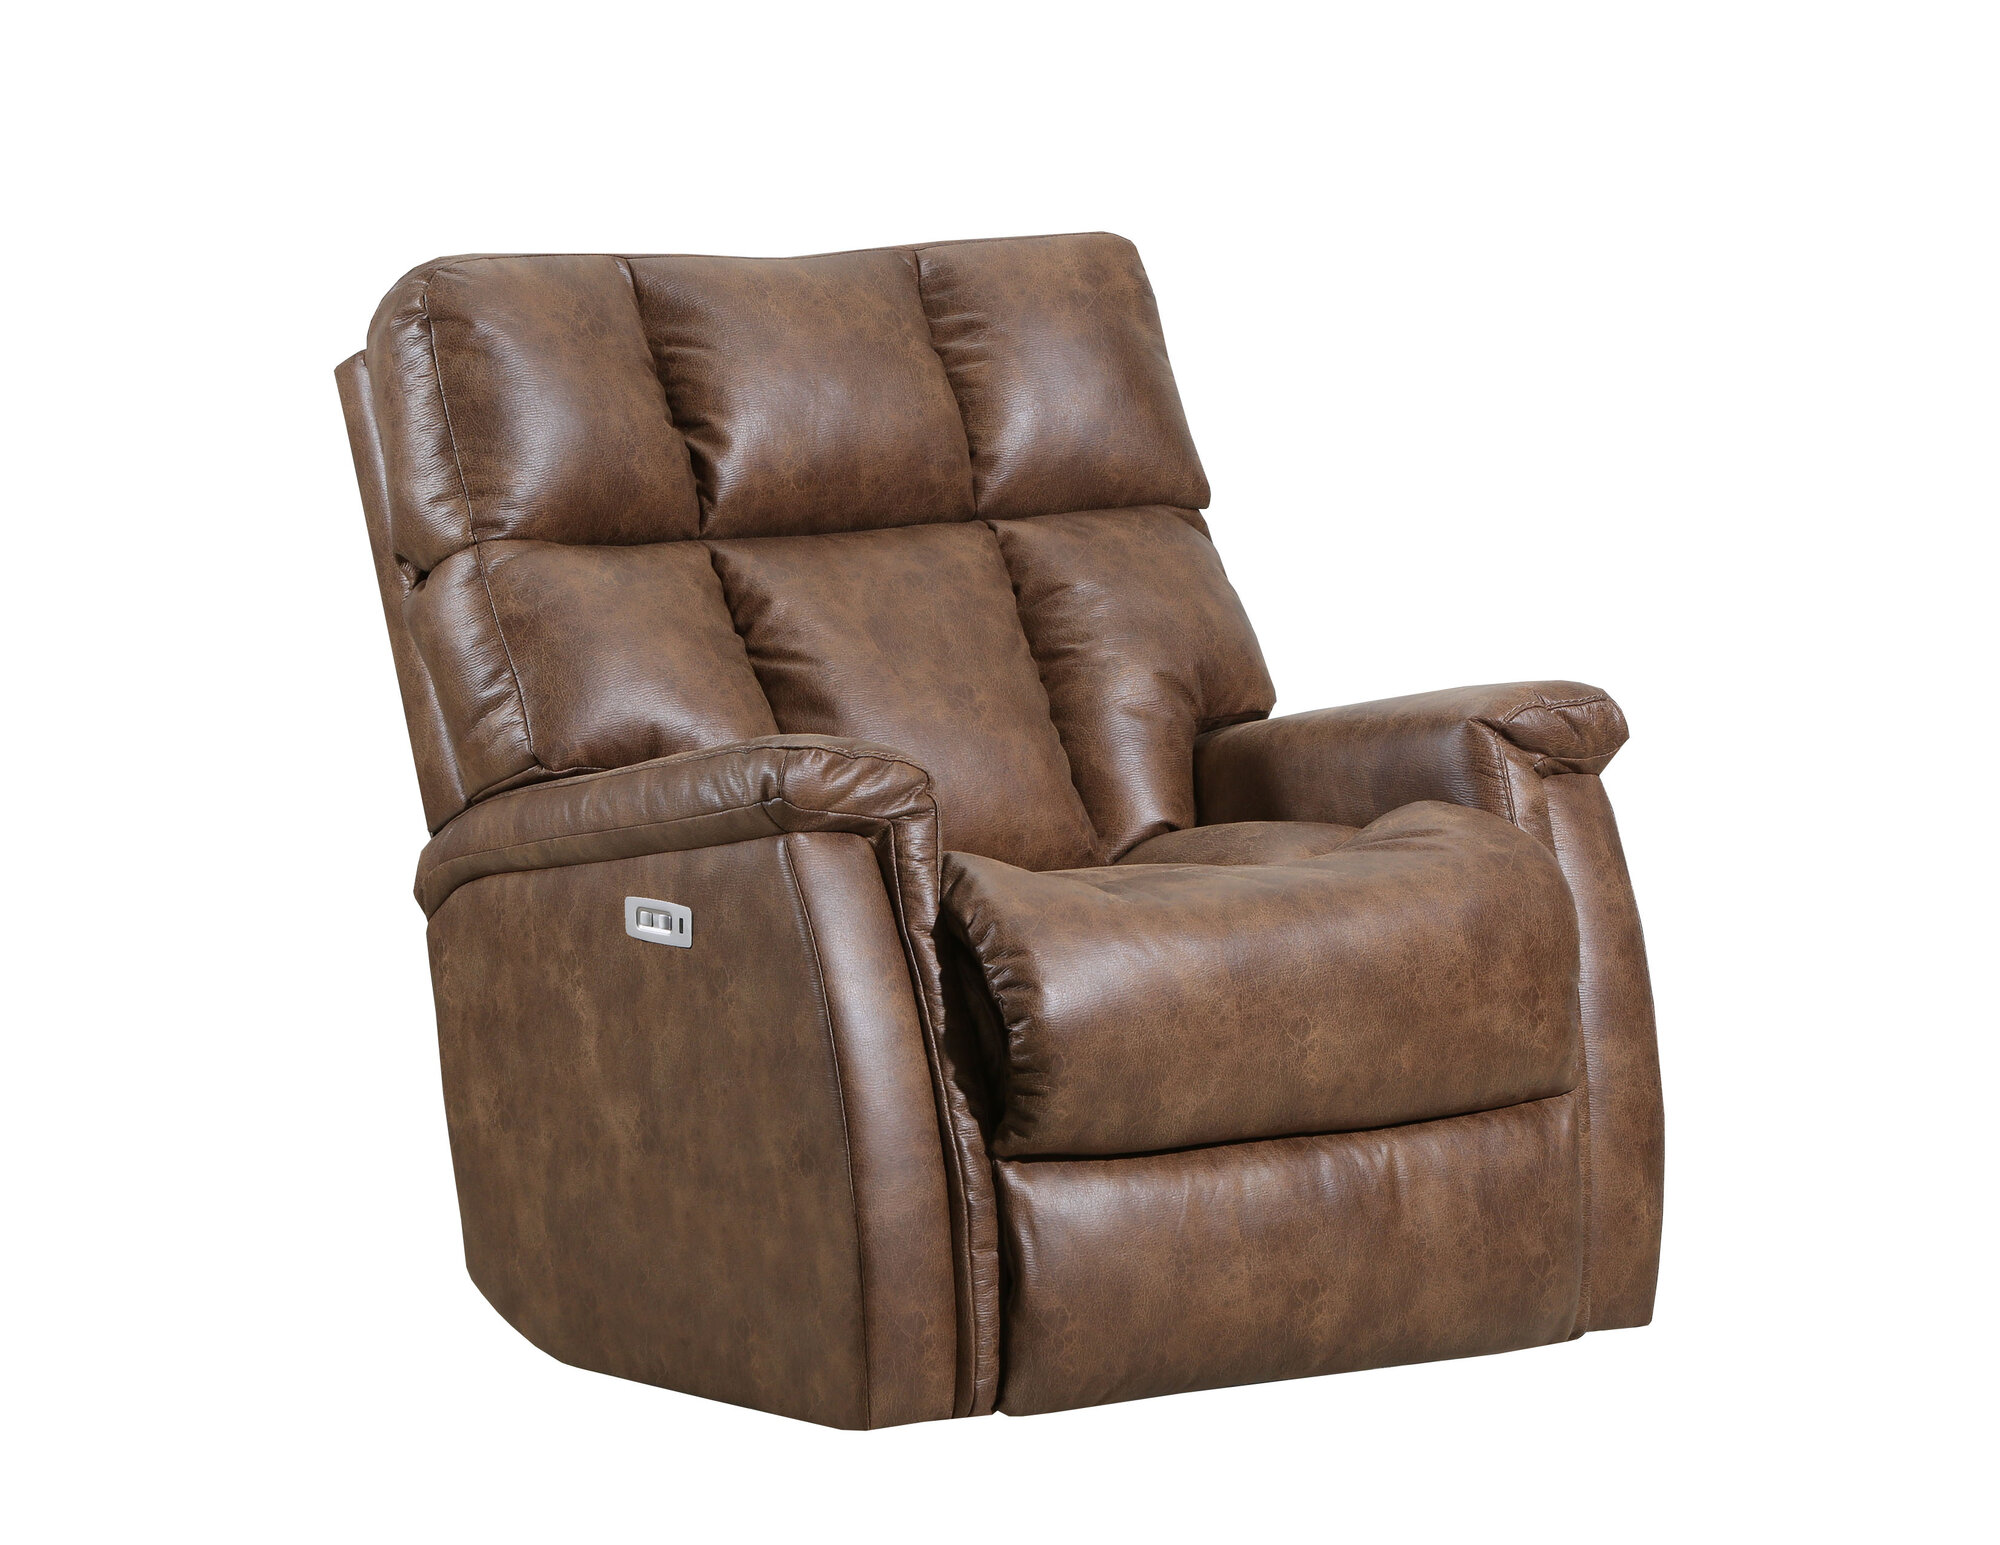 Lane Furniture Alsache Recliner Ebay